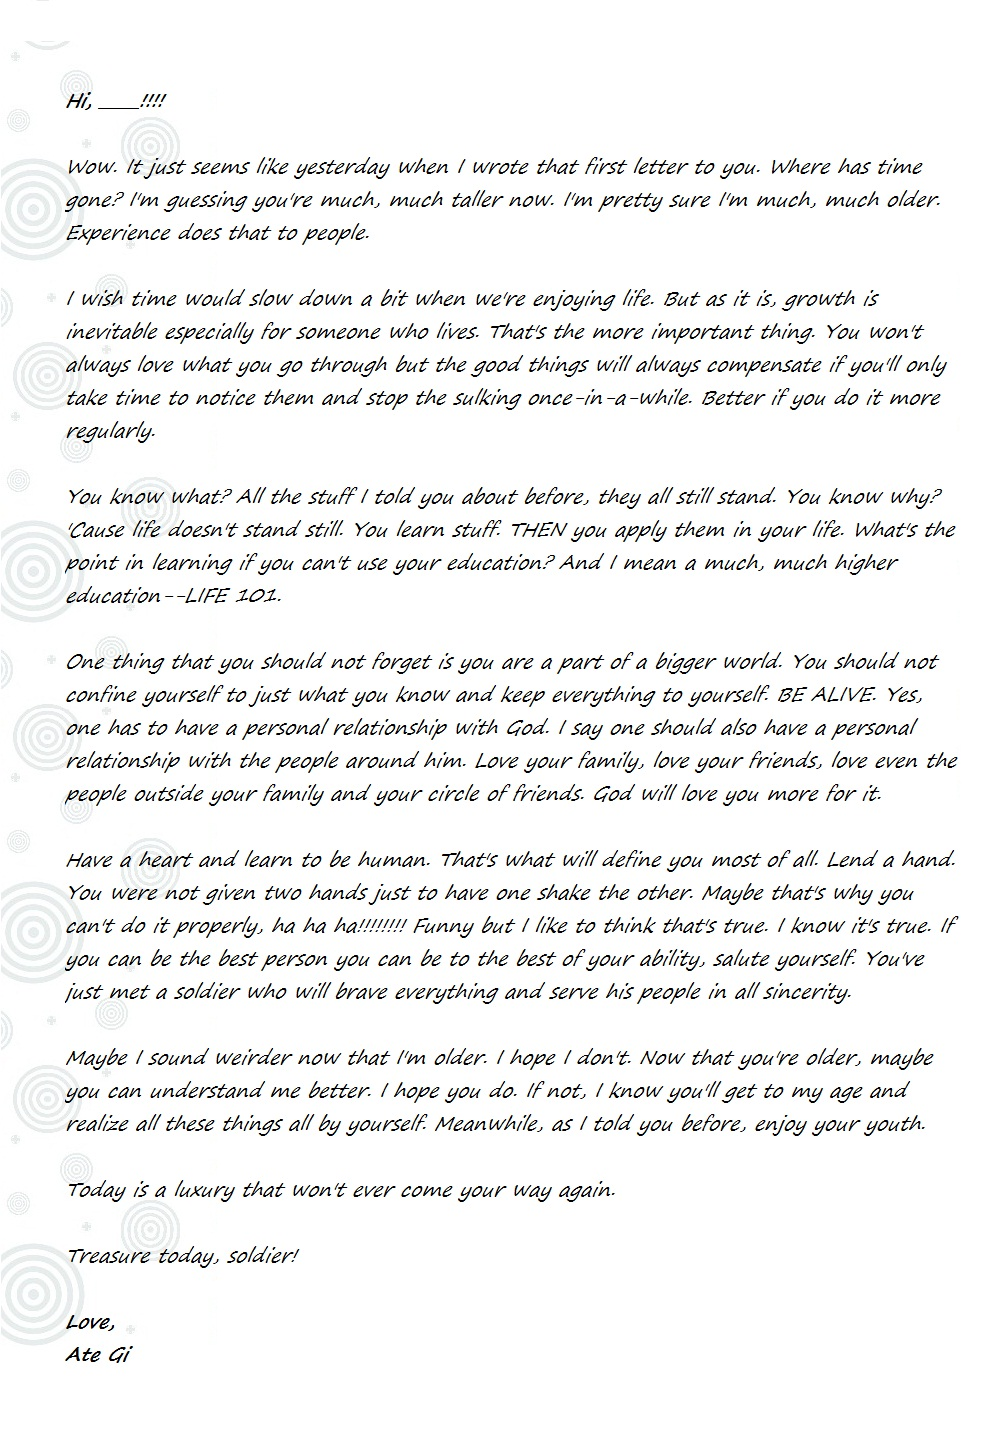 Retreat letter the end justifies the journey advice to a young lad 2 altavistaventures Choice Image